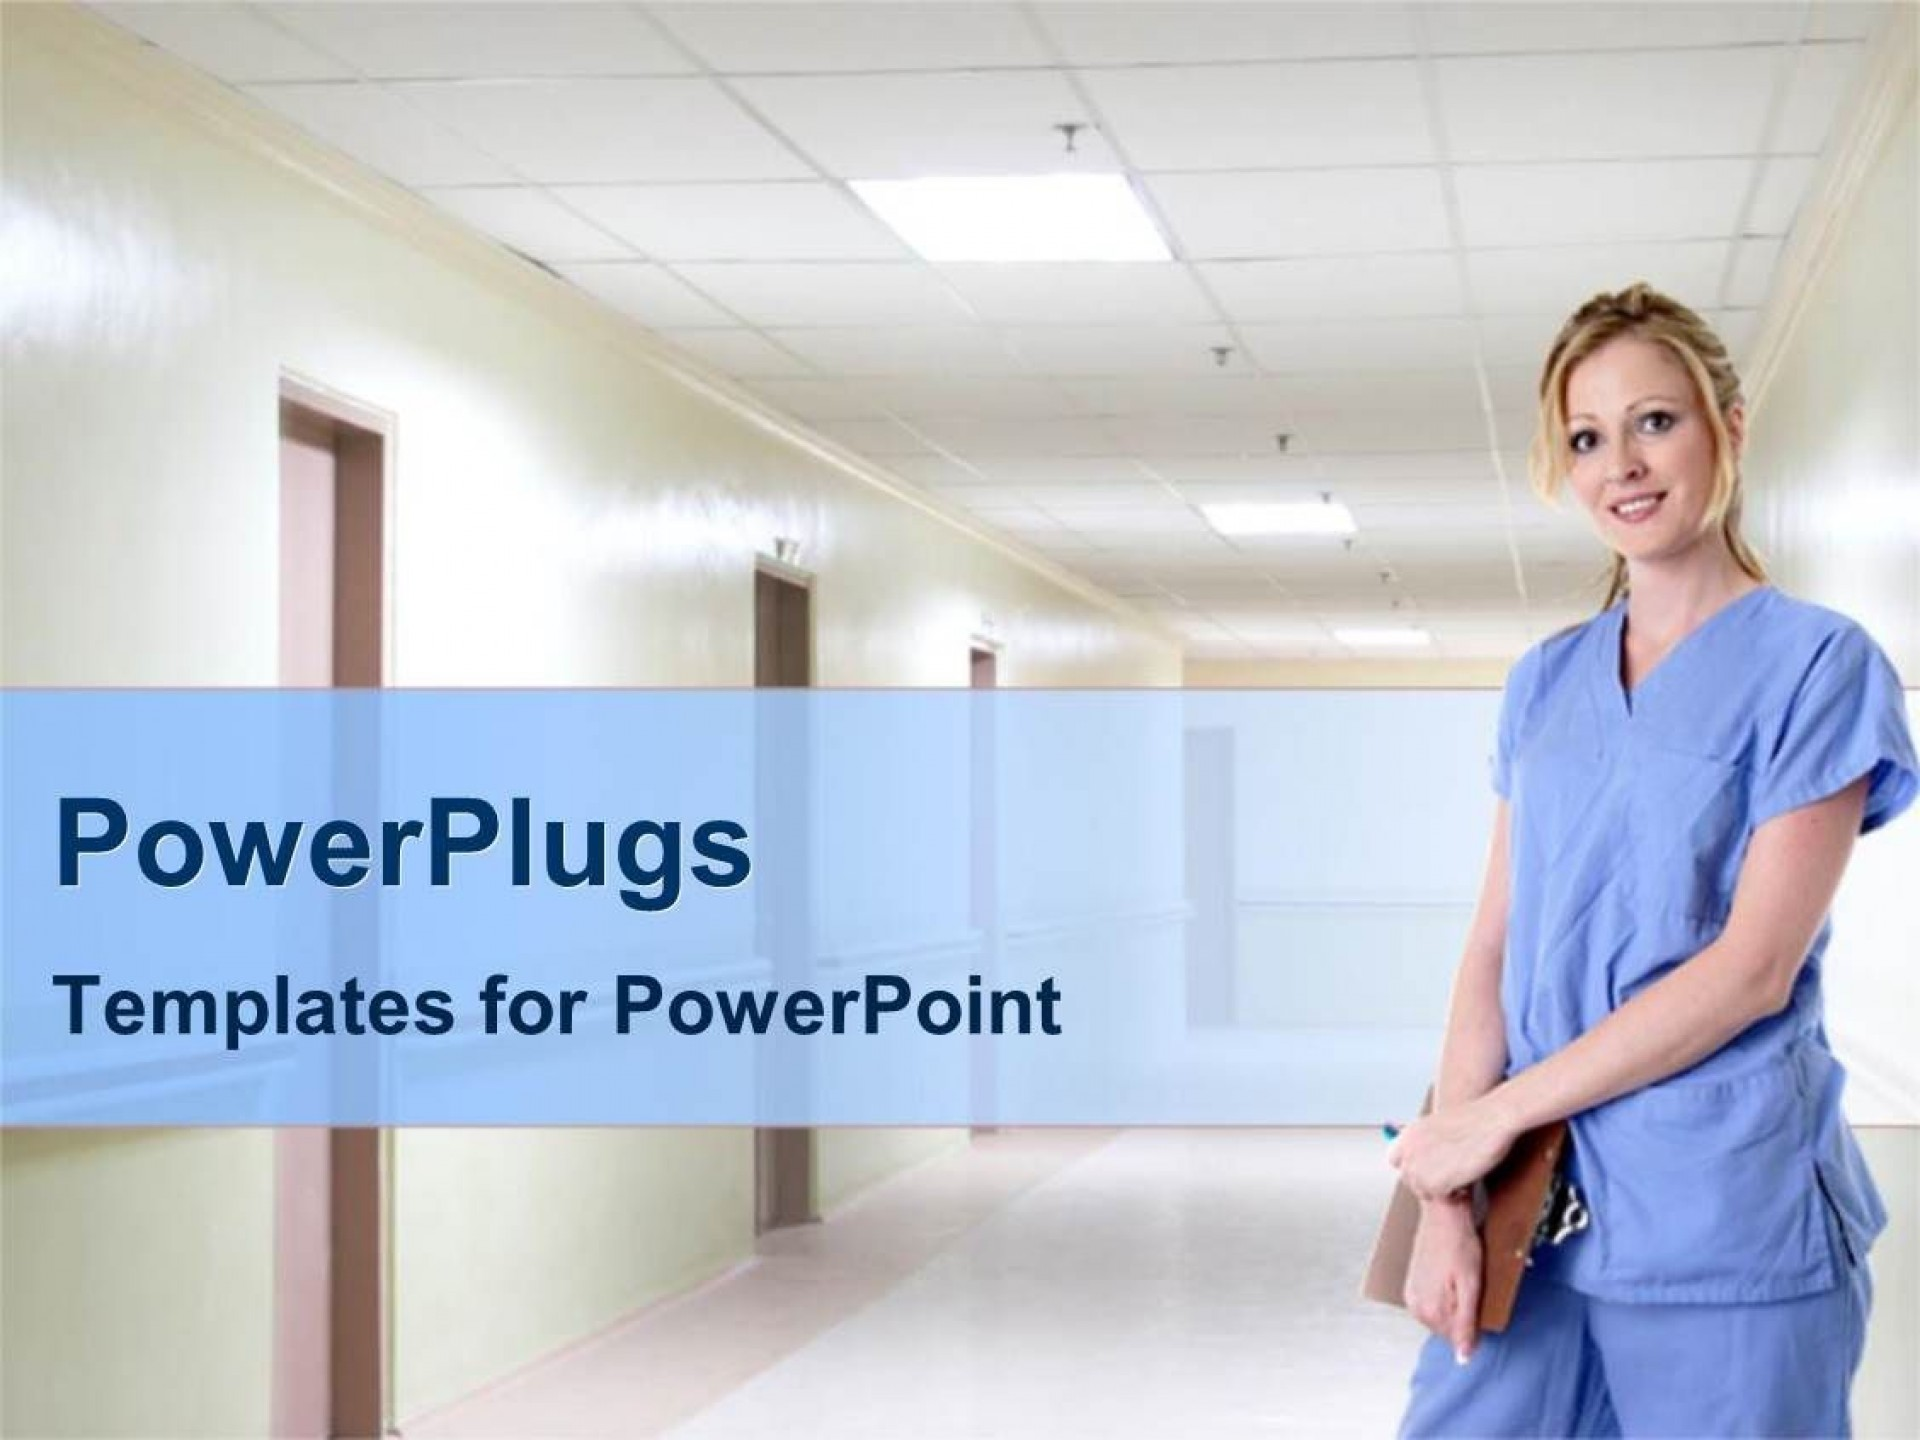 009 Unforgettable Free Nursing Powerpoint Template Picture  Education Download1920